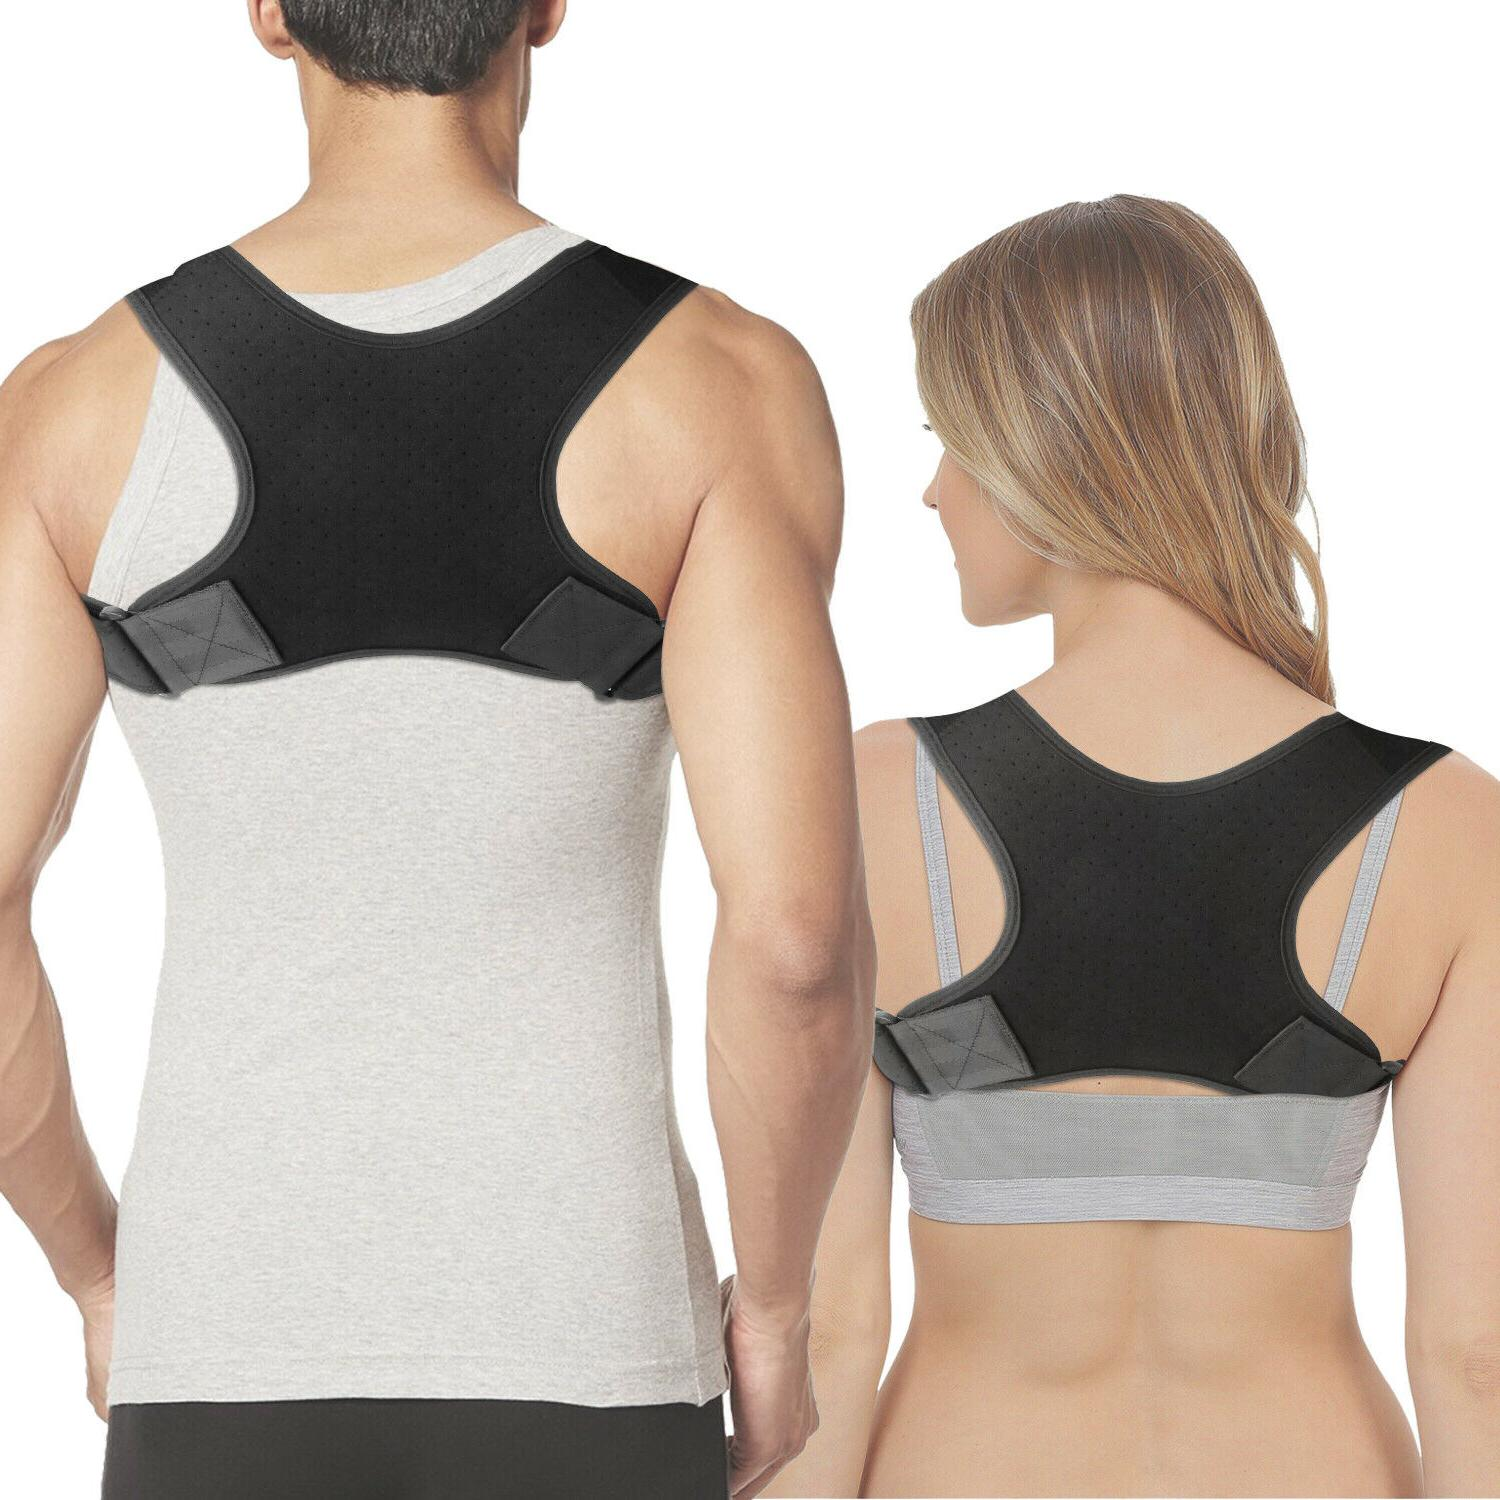 Posture Adjustable Upper Back Shoulder Belt Support Brace Men